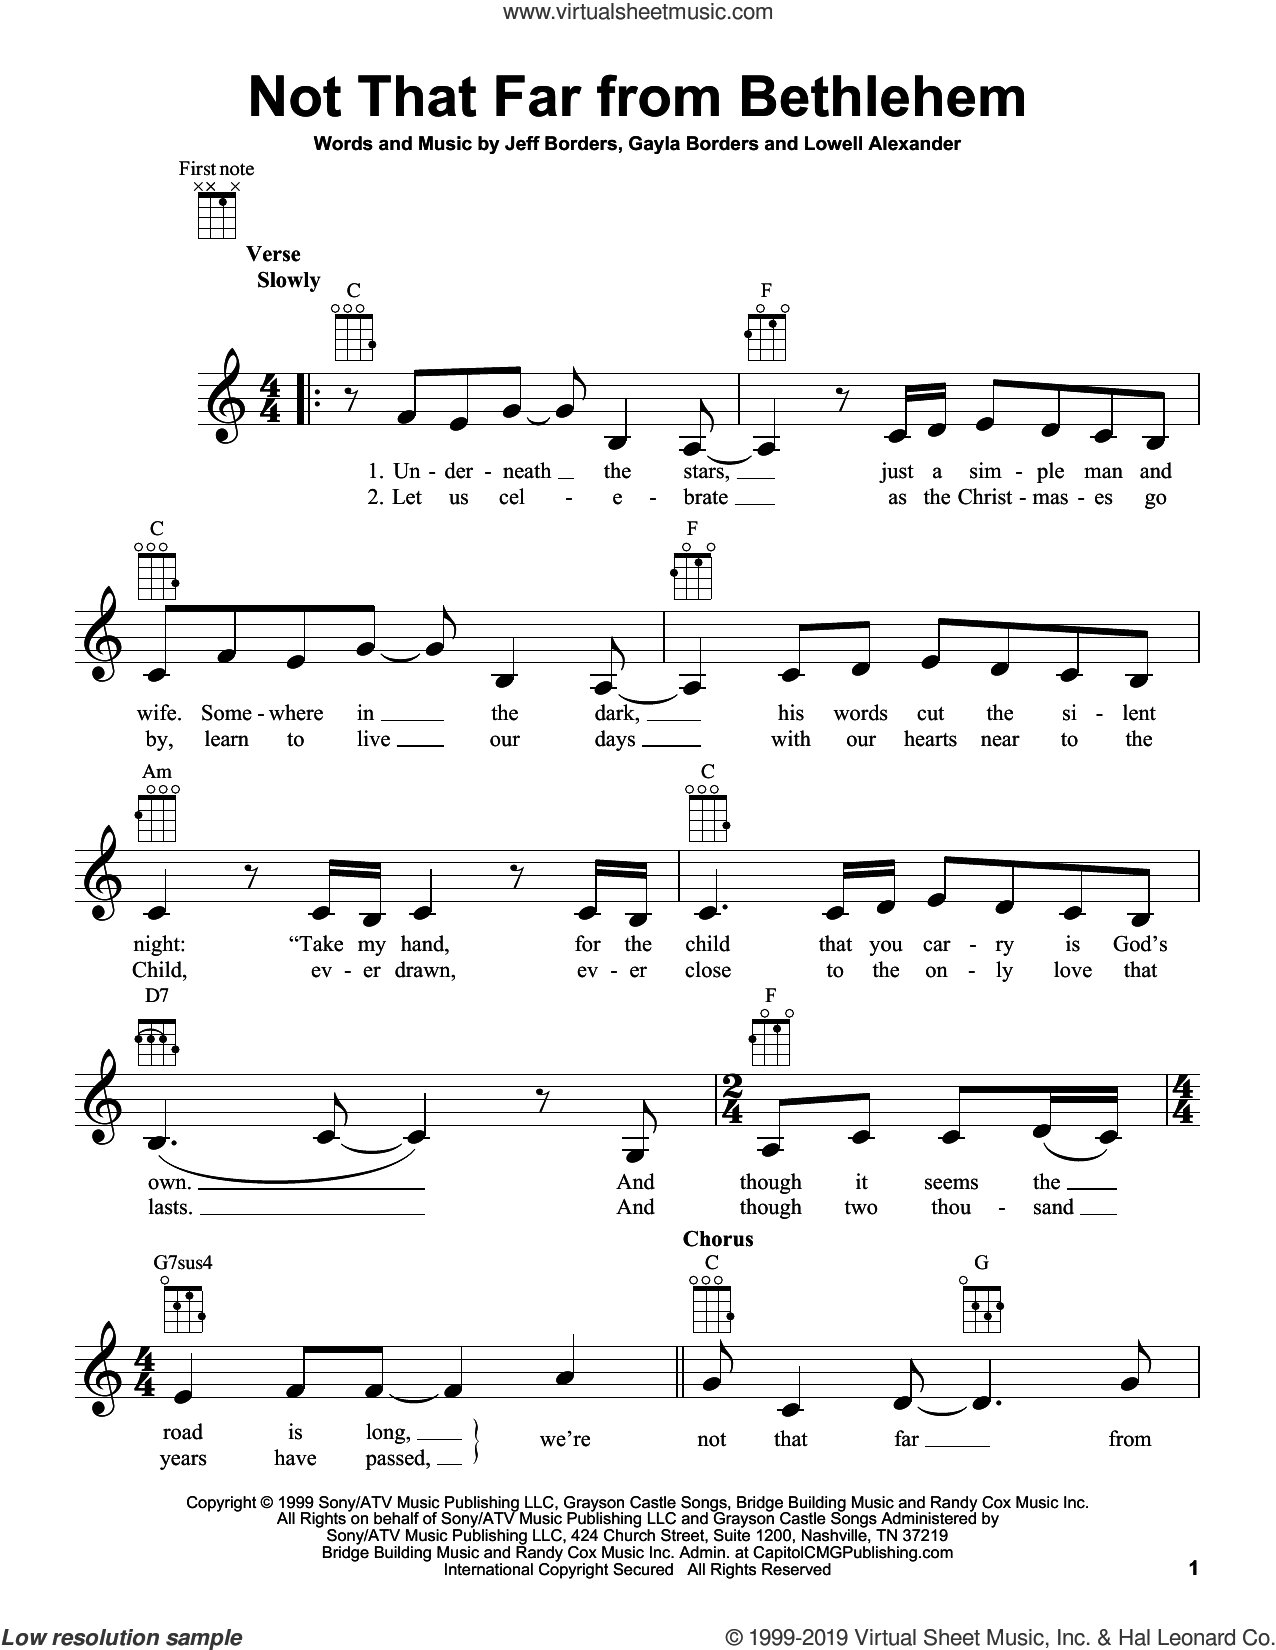 Not That Far From Bethlehem sheet music for ukulele by Point Of Grace, Gayla Borders, Jeff Borders and Lowell Alexander, intermediate skill level